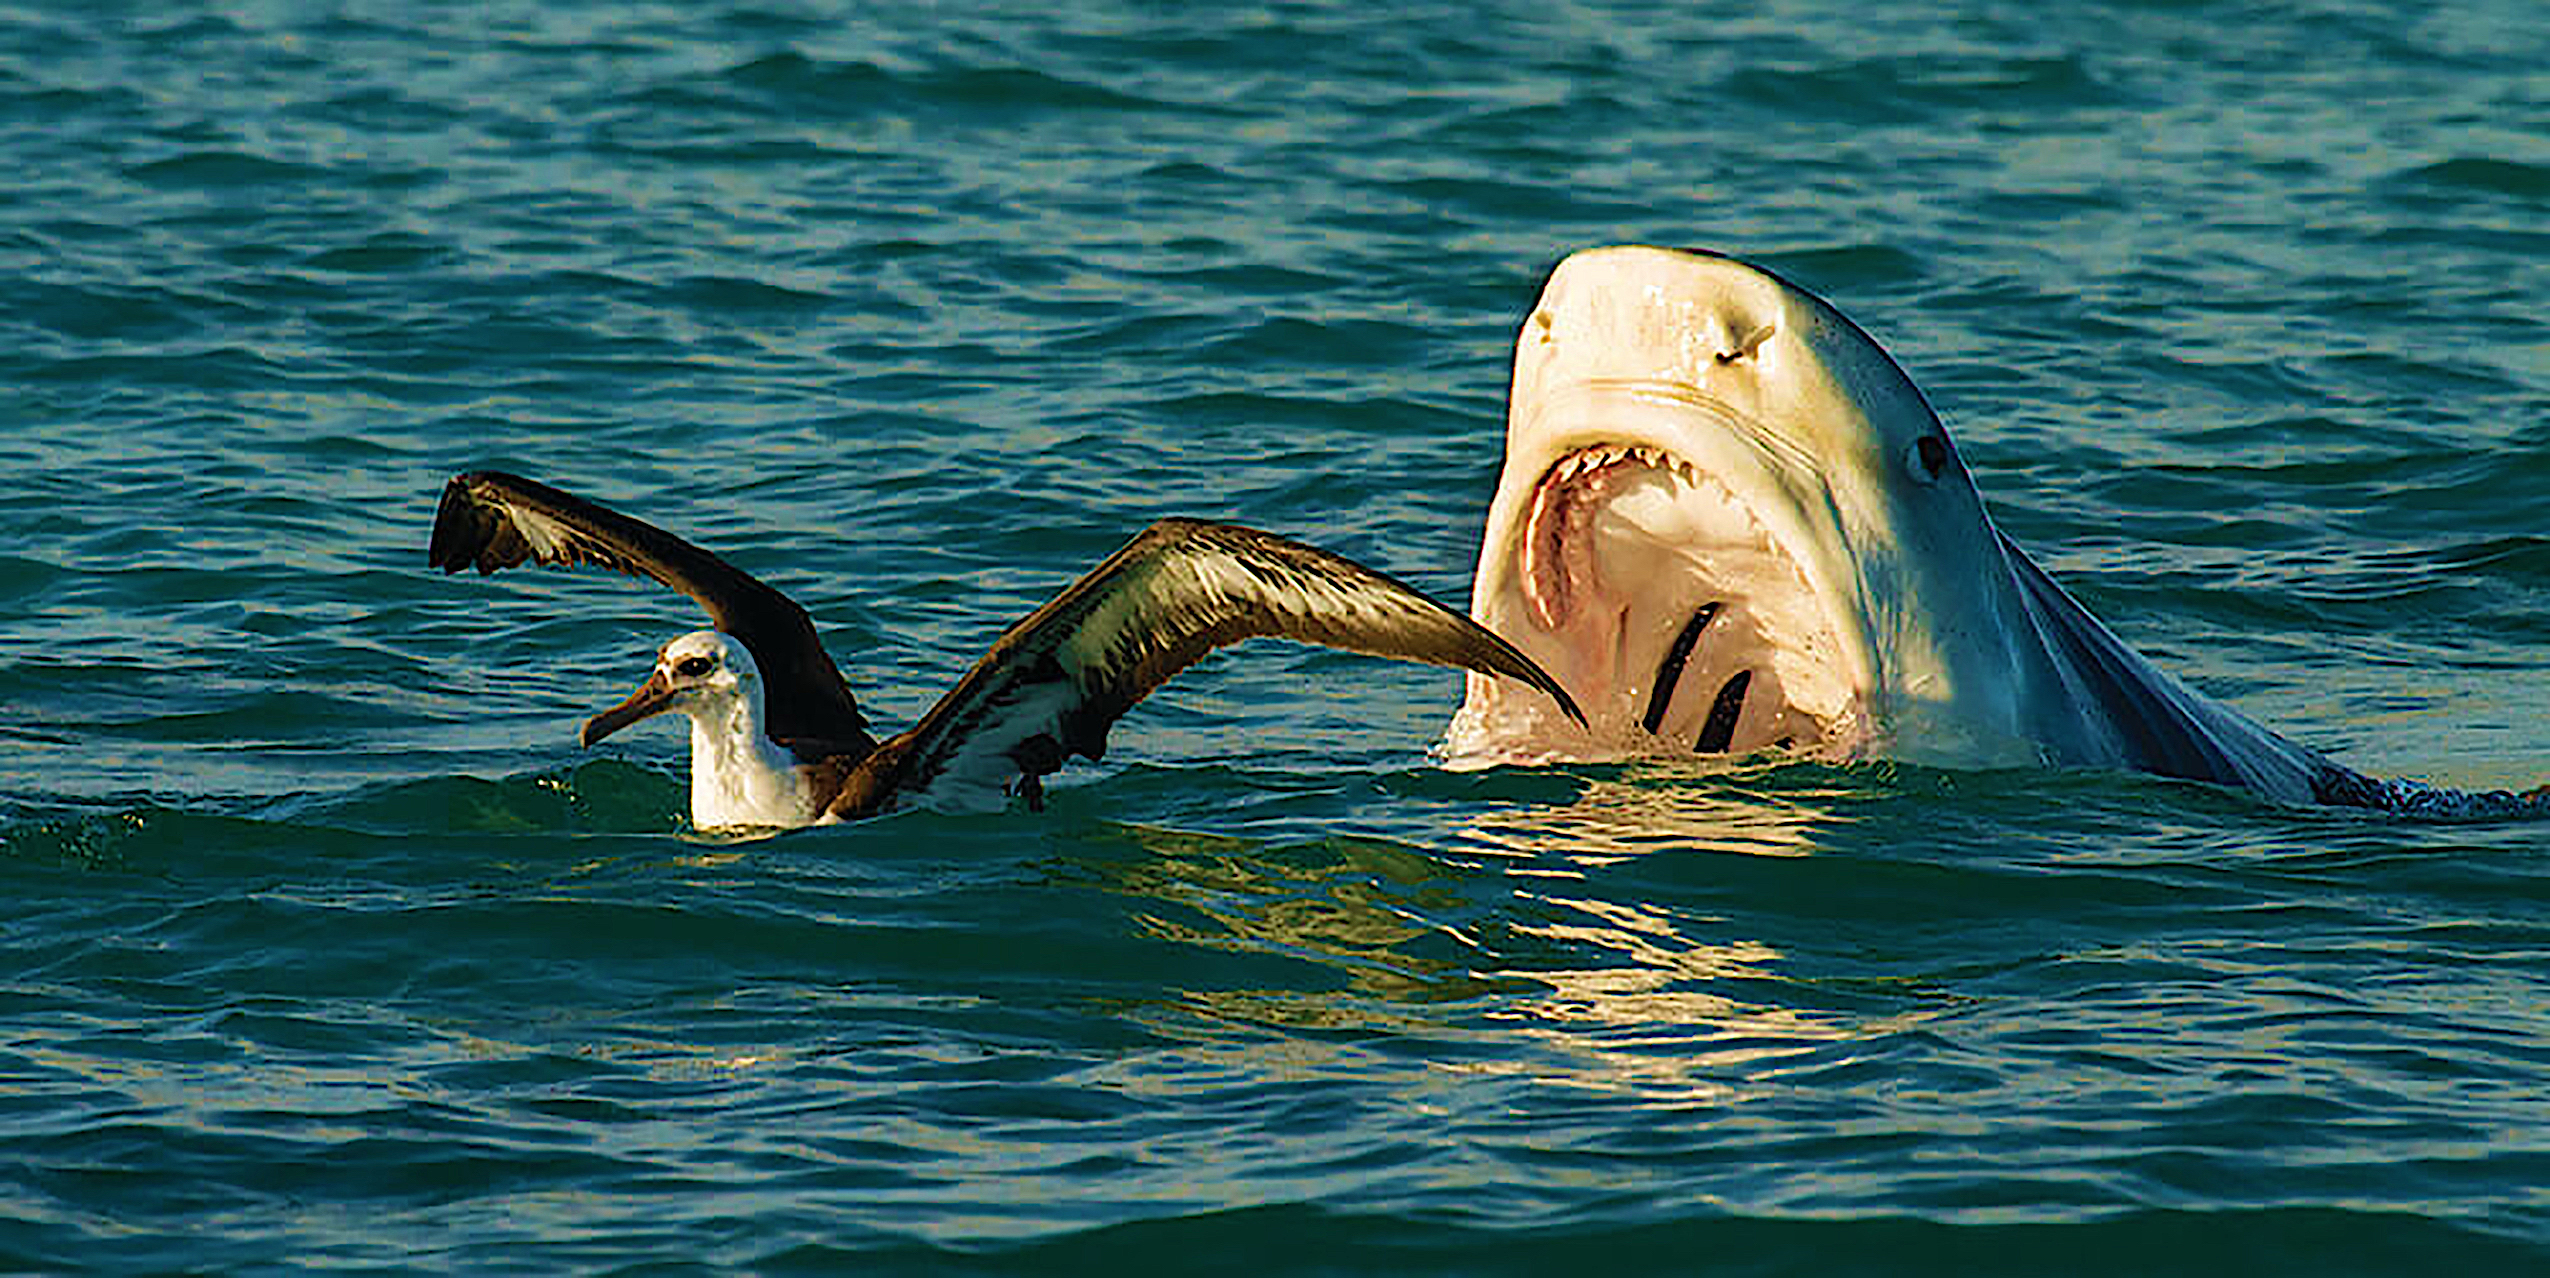 Tiger shark versus albatross, courtesy of Ilana Nimz/NOAA